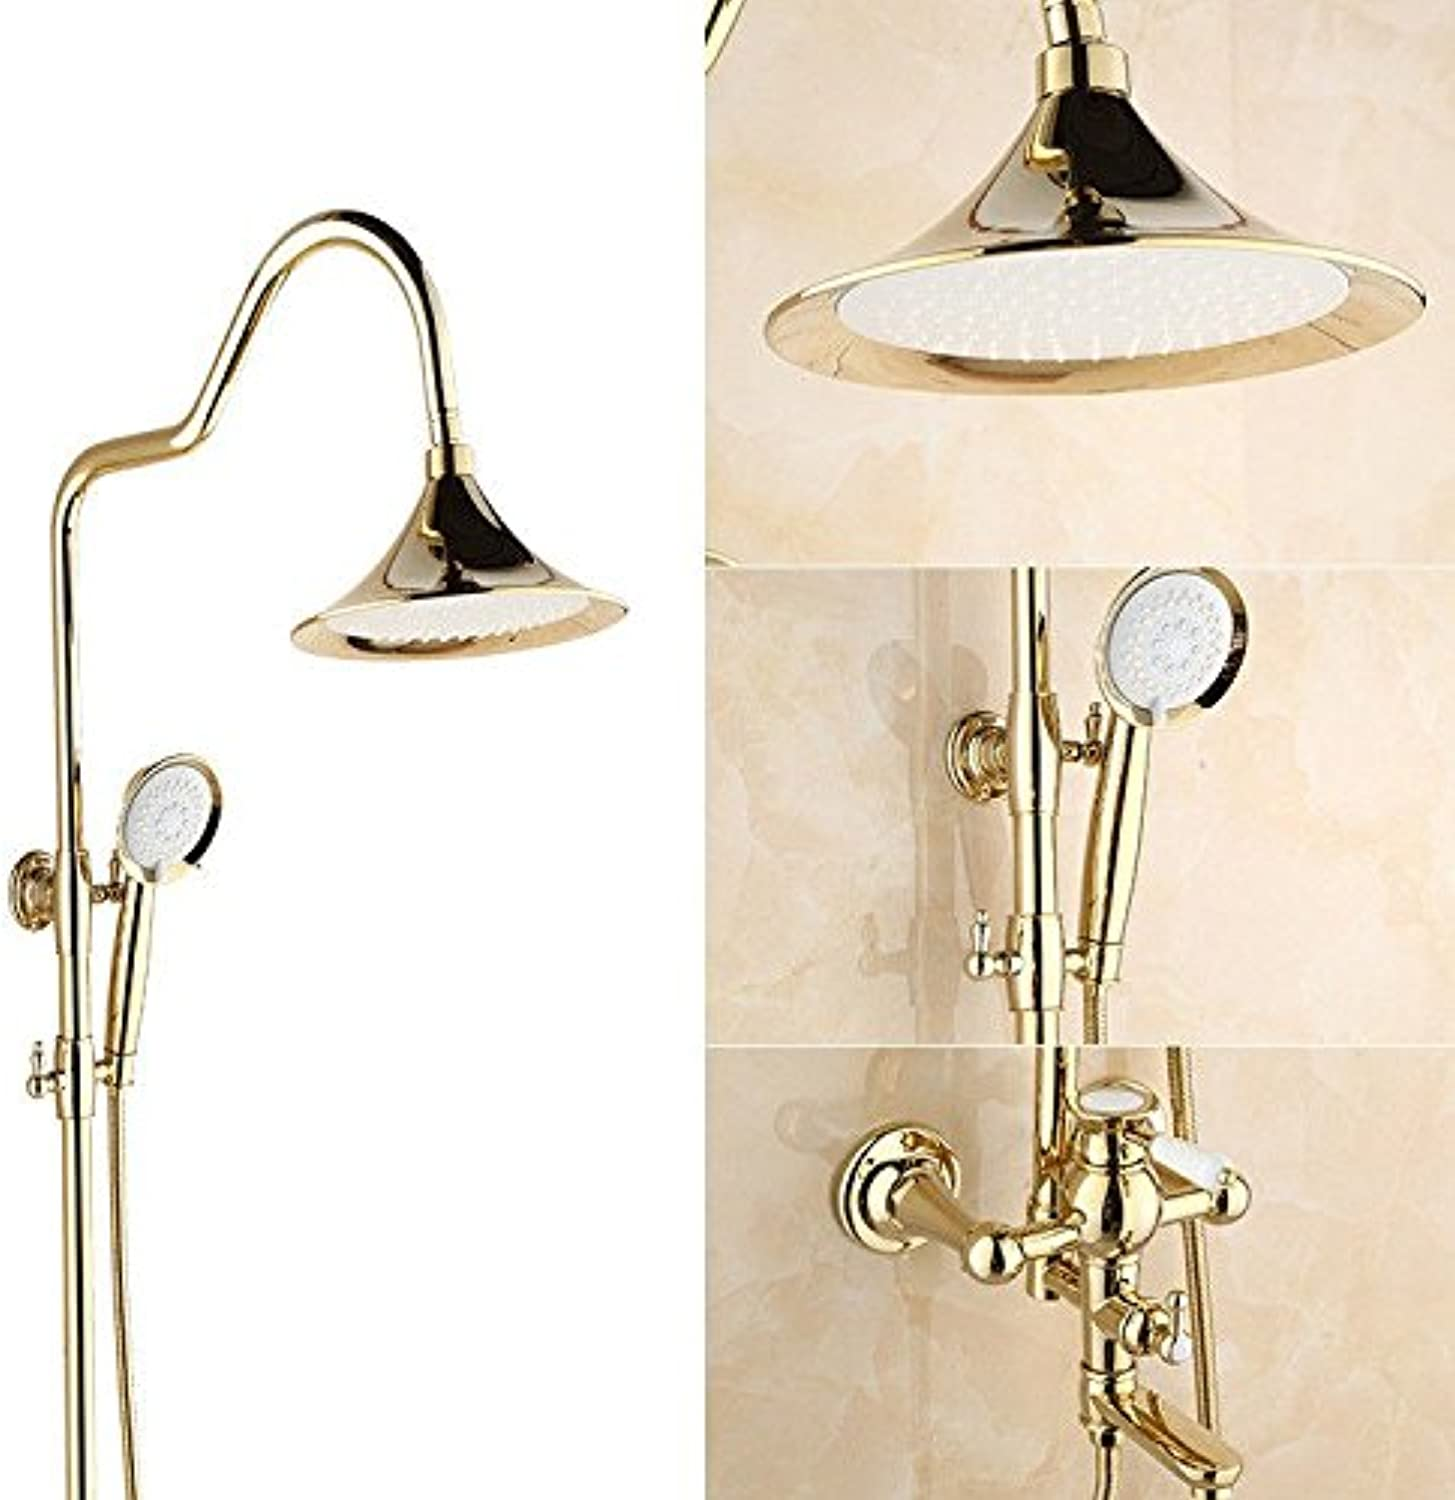 Hlluya Professional Sink Mixer Tap Kitchen Faucet Shower Kit large elbow gold Lo-copper shower hot cold water faucet handheld can lift the bath